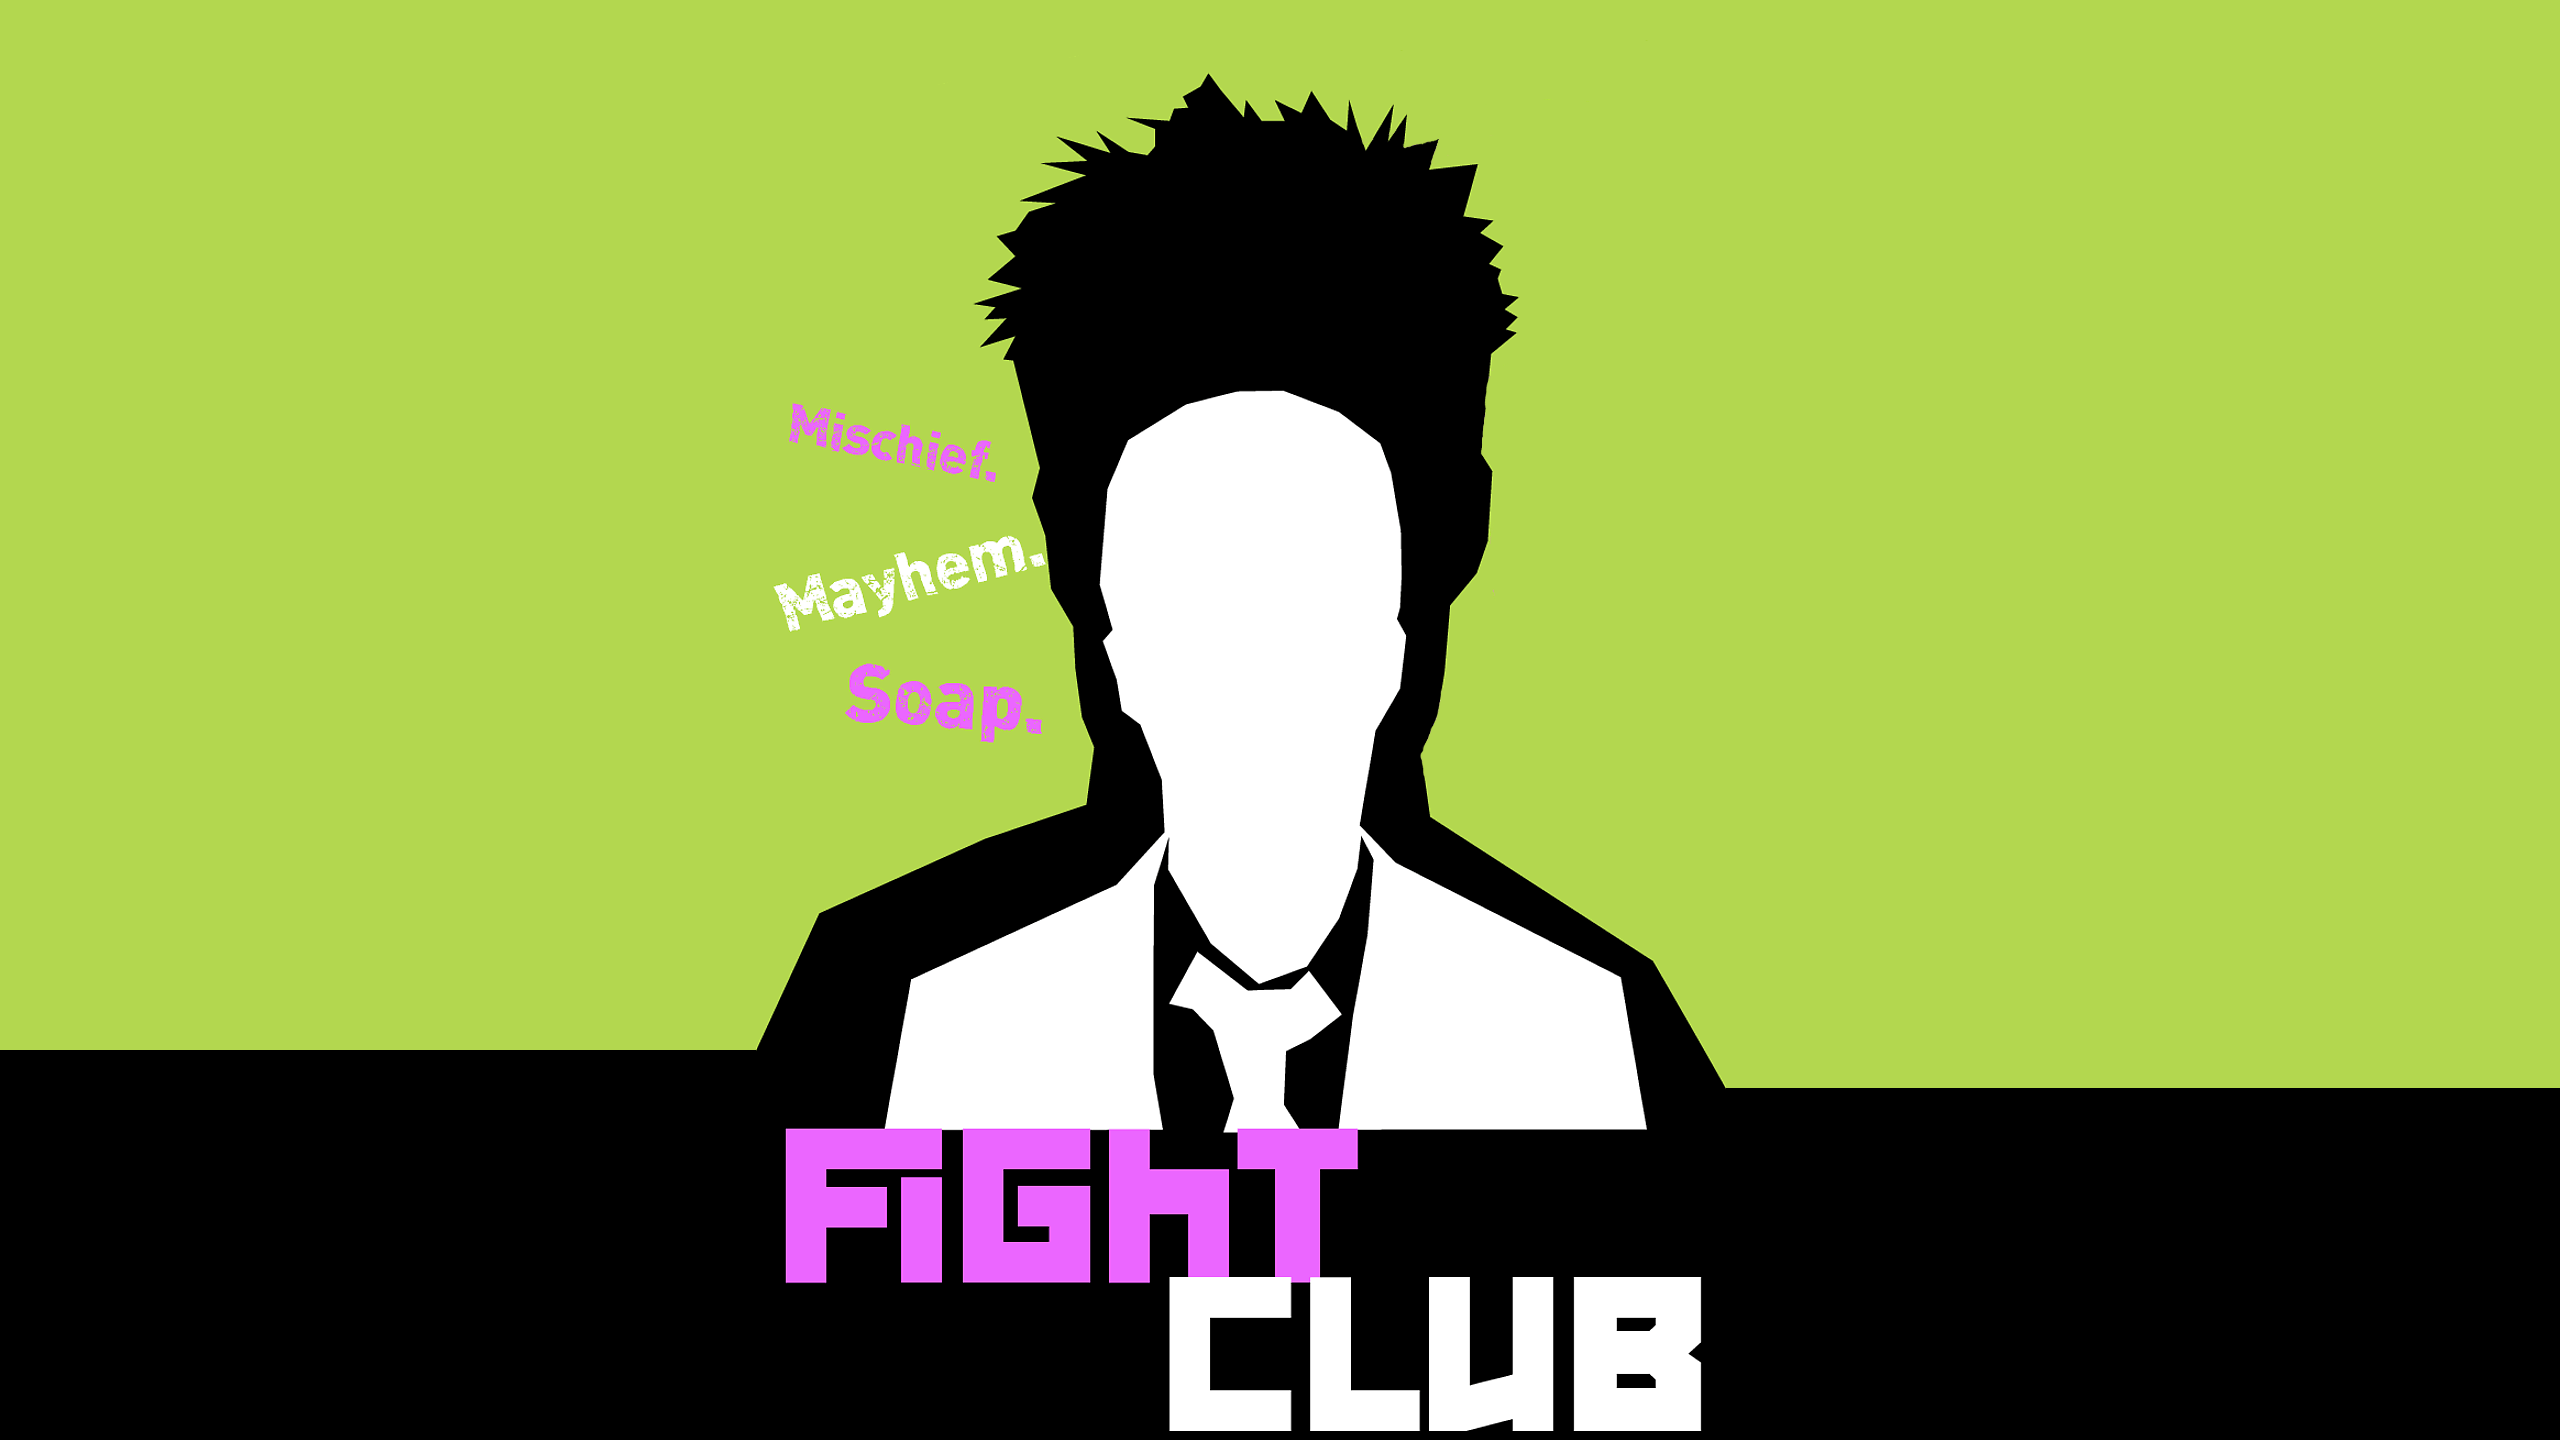 Fight Club Movie Wallpapers 2560x1440